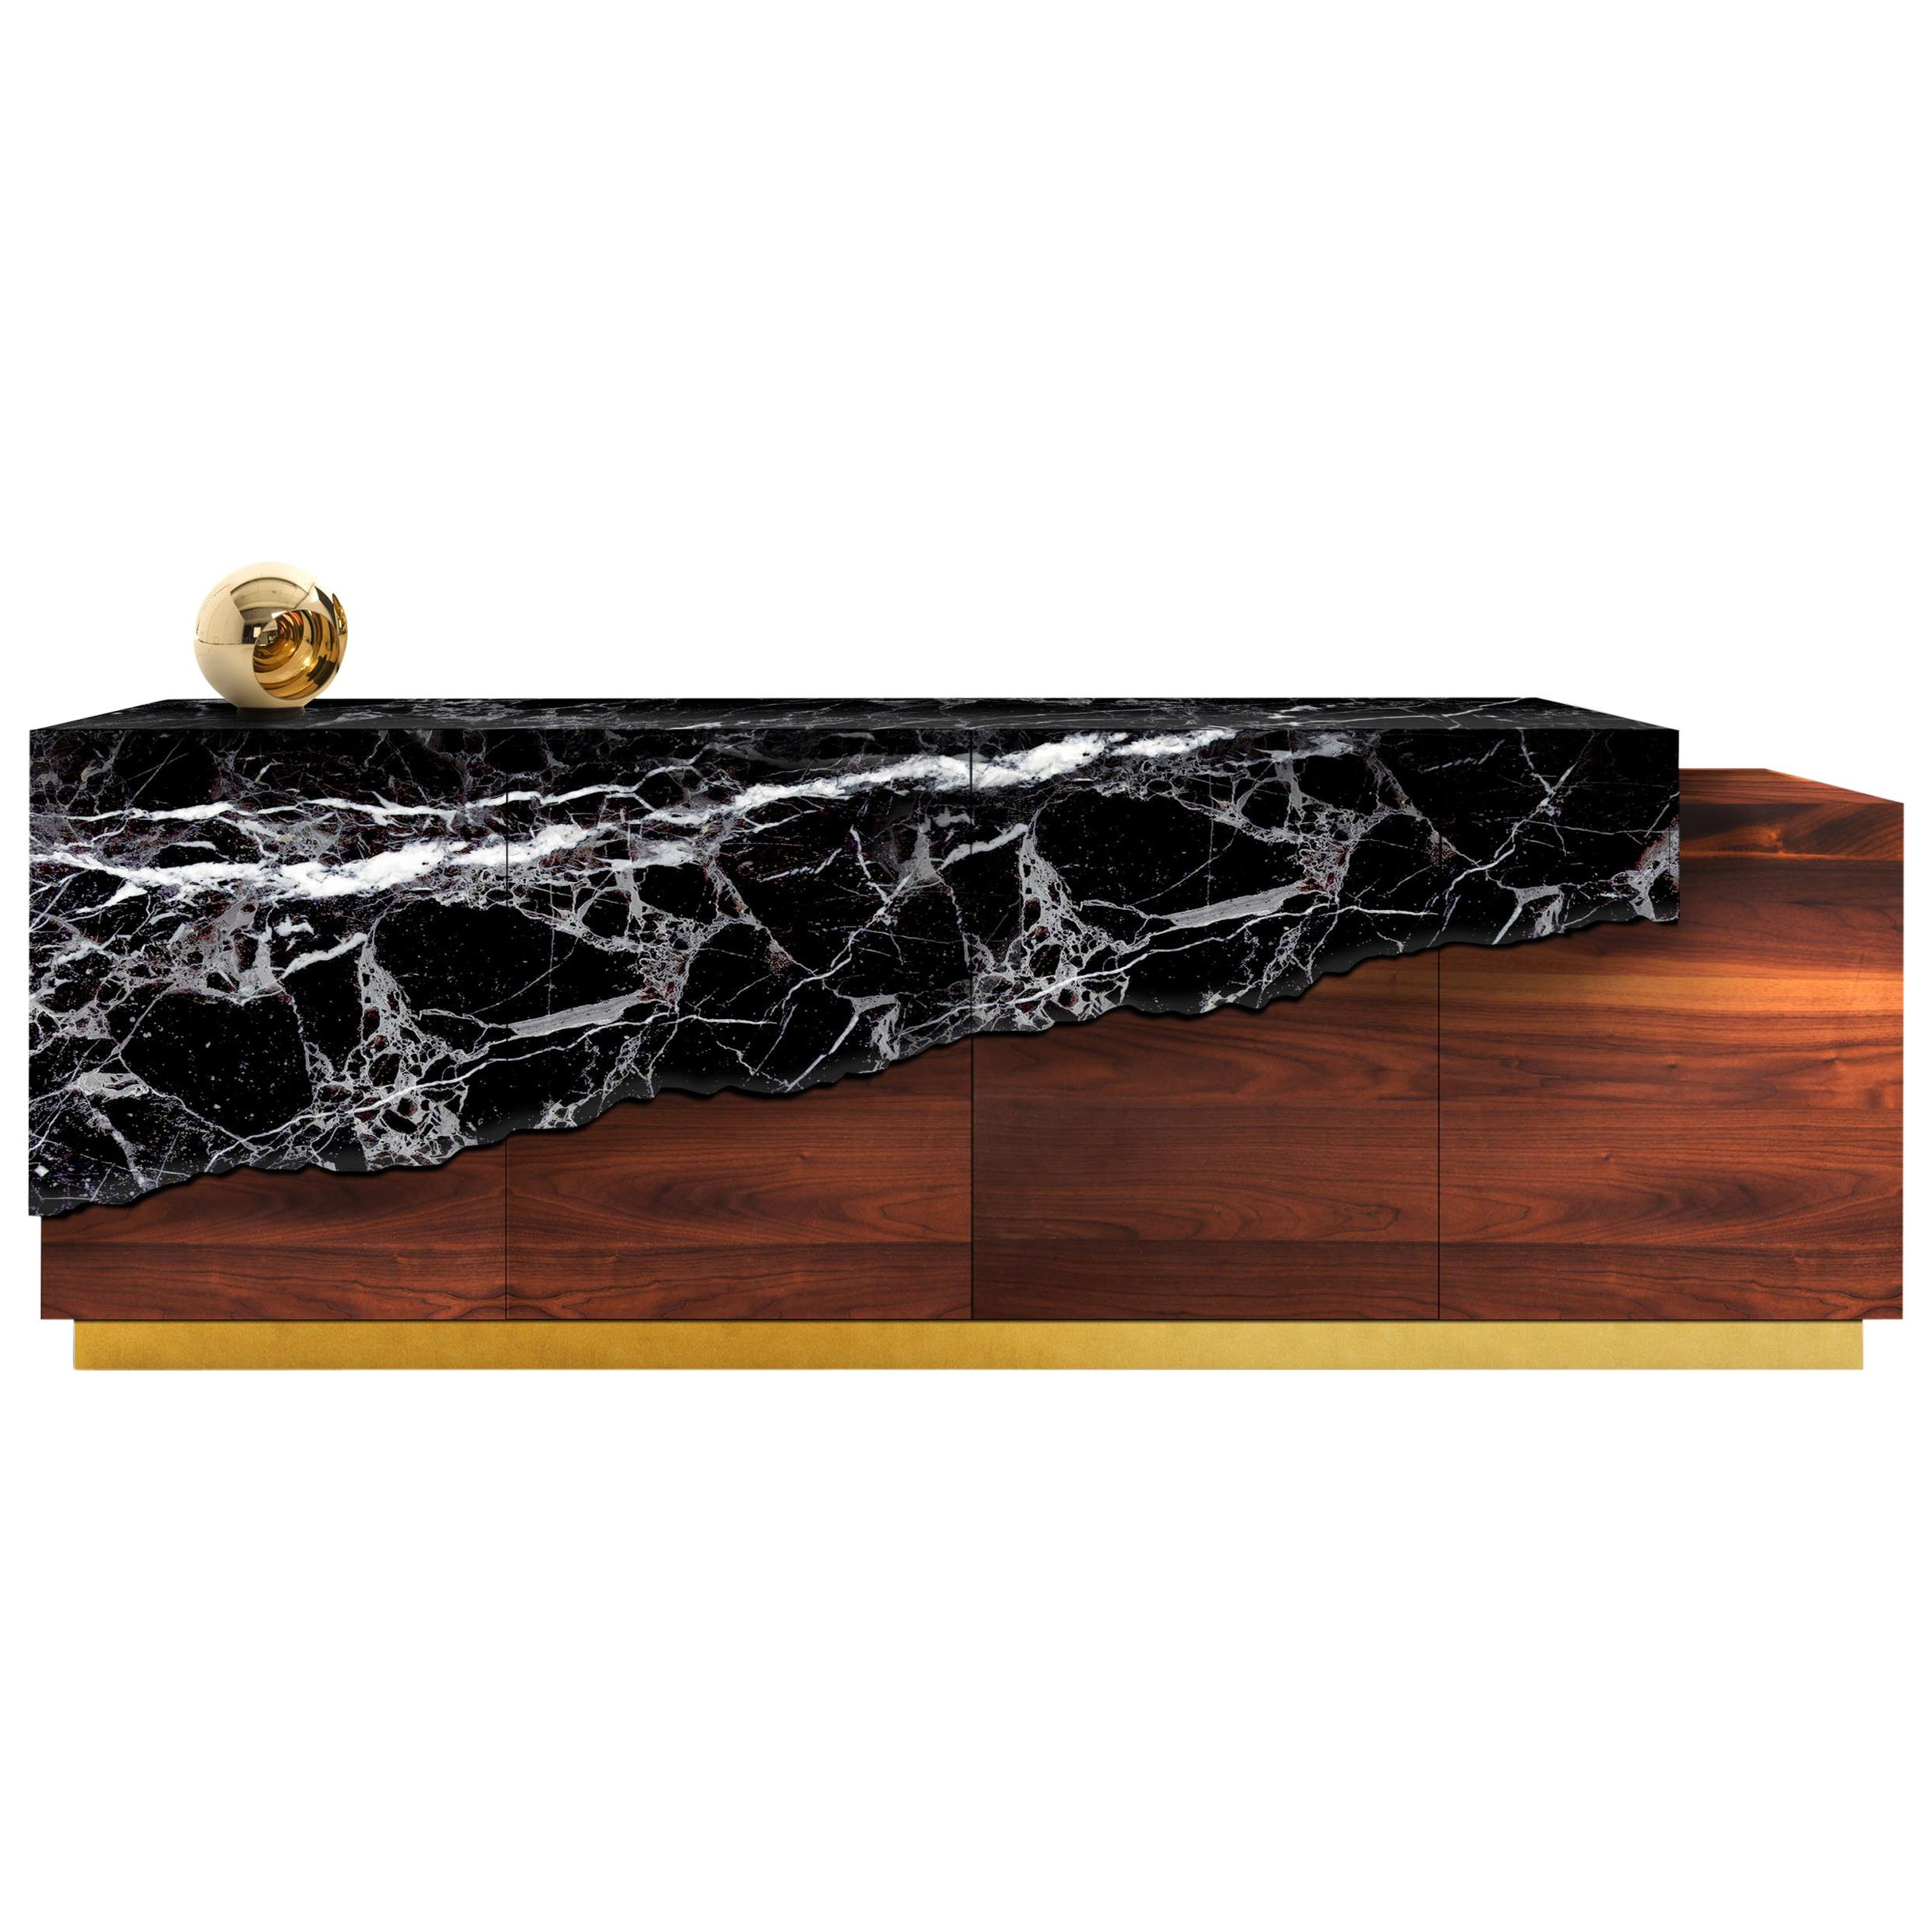 Boji Sideboard, Contemporary Credenza In Aged Brass, Marble & Walnut W Led  Light Throughout Ocean Marble Credenzas (View 2 of 20)